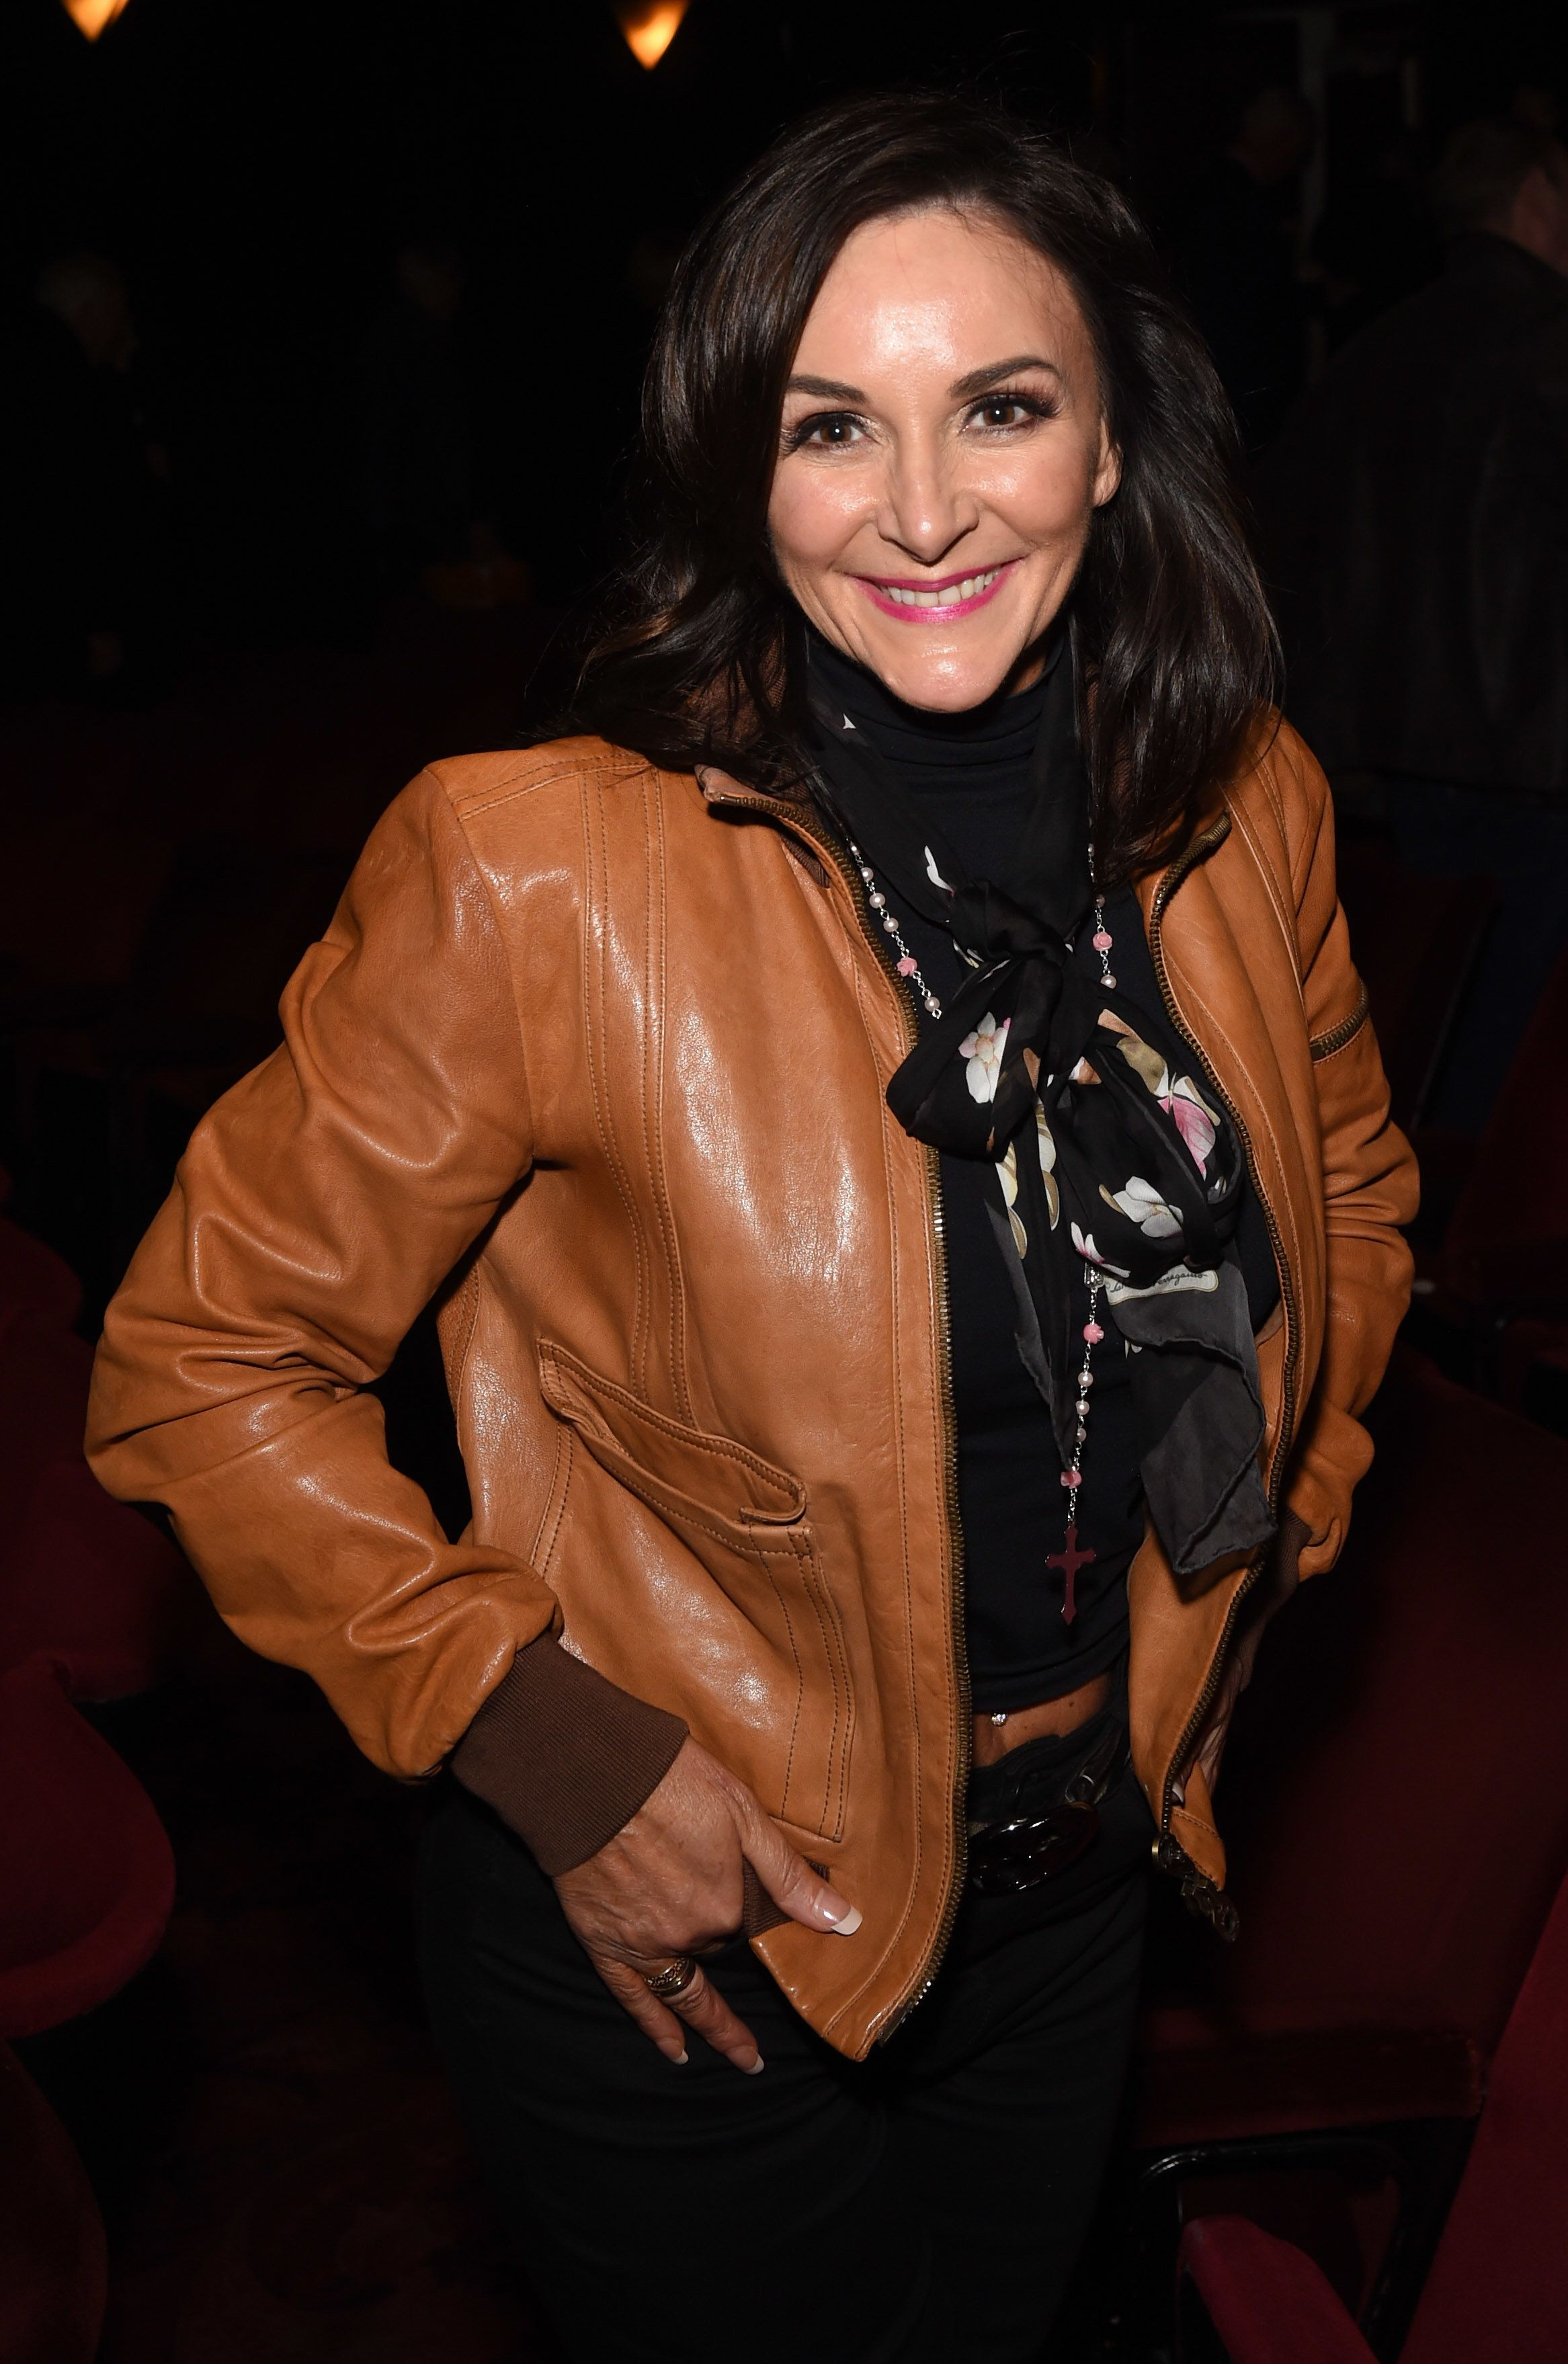 Strictly Come Dancing's Shirley Ballas Opens Up About Dealing With